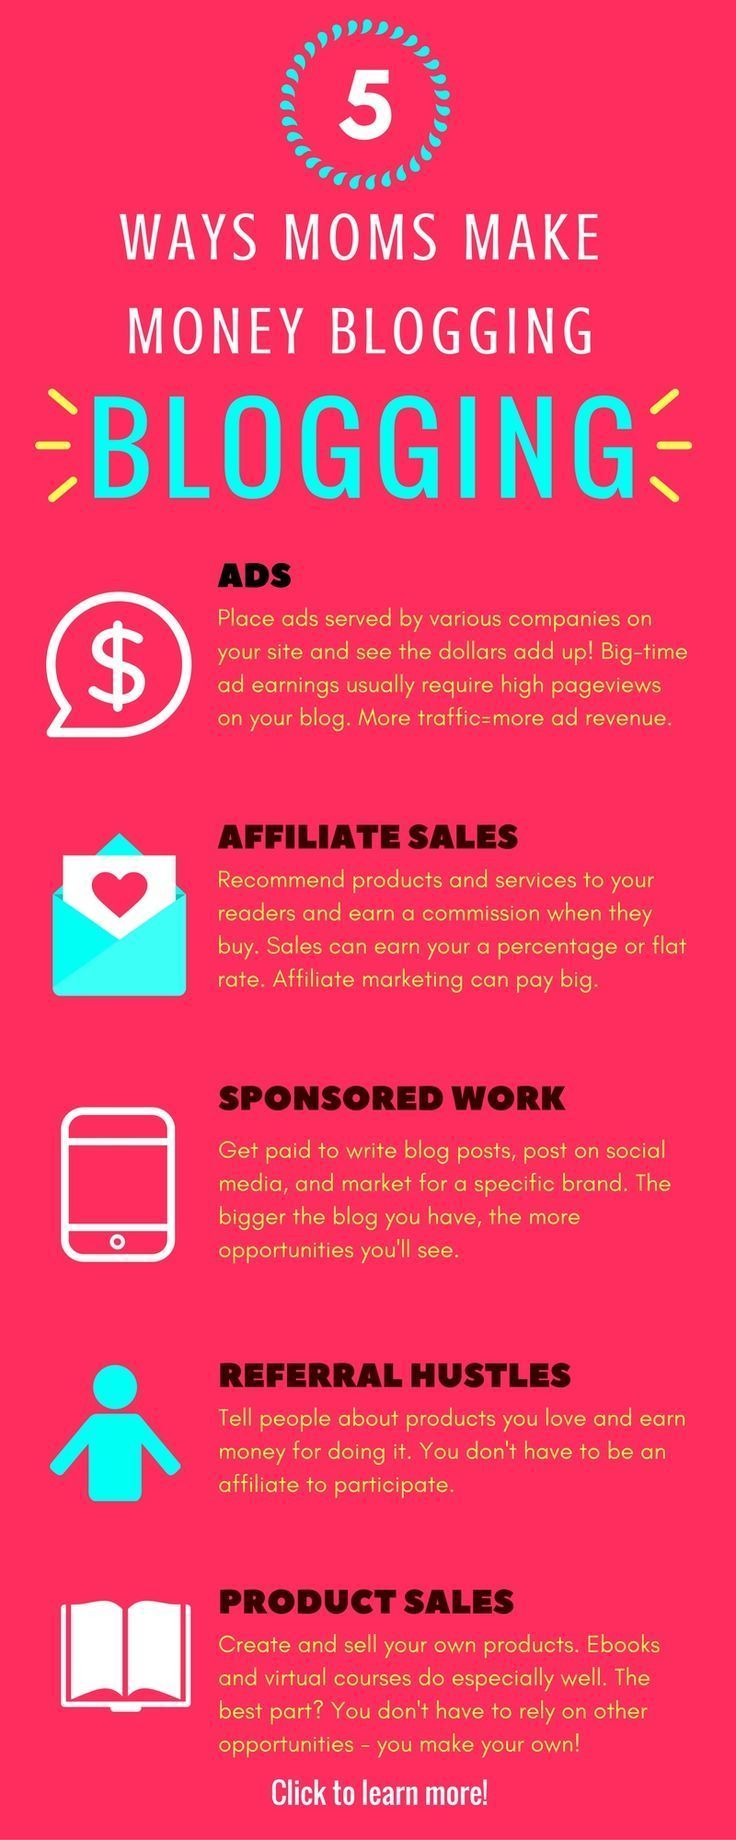 Looking for a way to make money online, from home? Here are 5 ways moms all over are making money blogging. Yep, you can do it too!